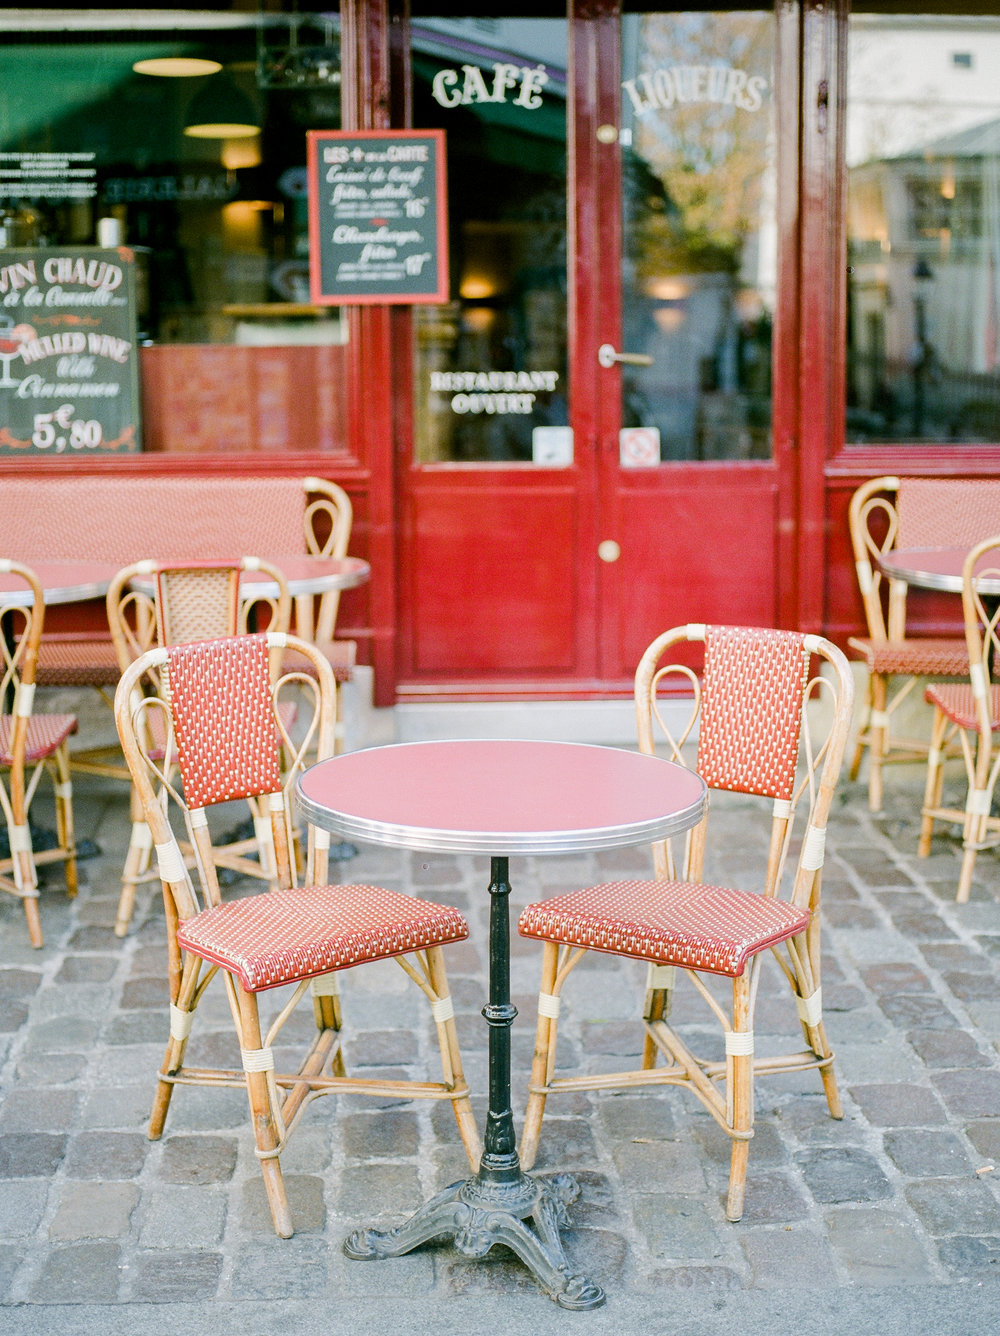 classic-red-chairs-at-paris-café.jpg